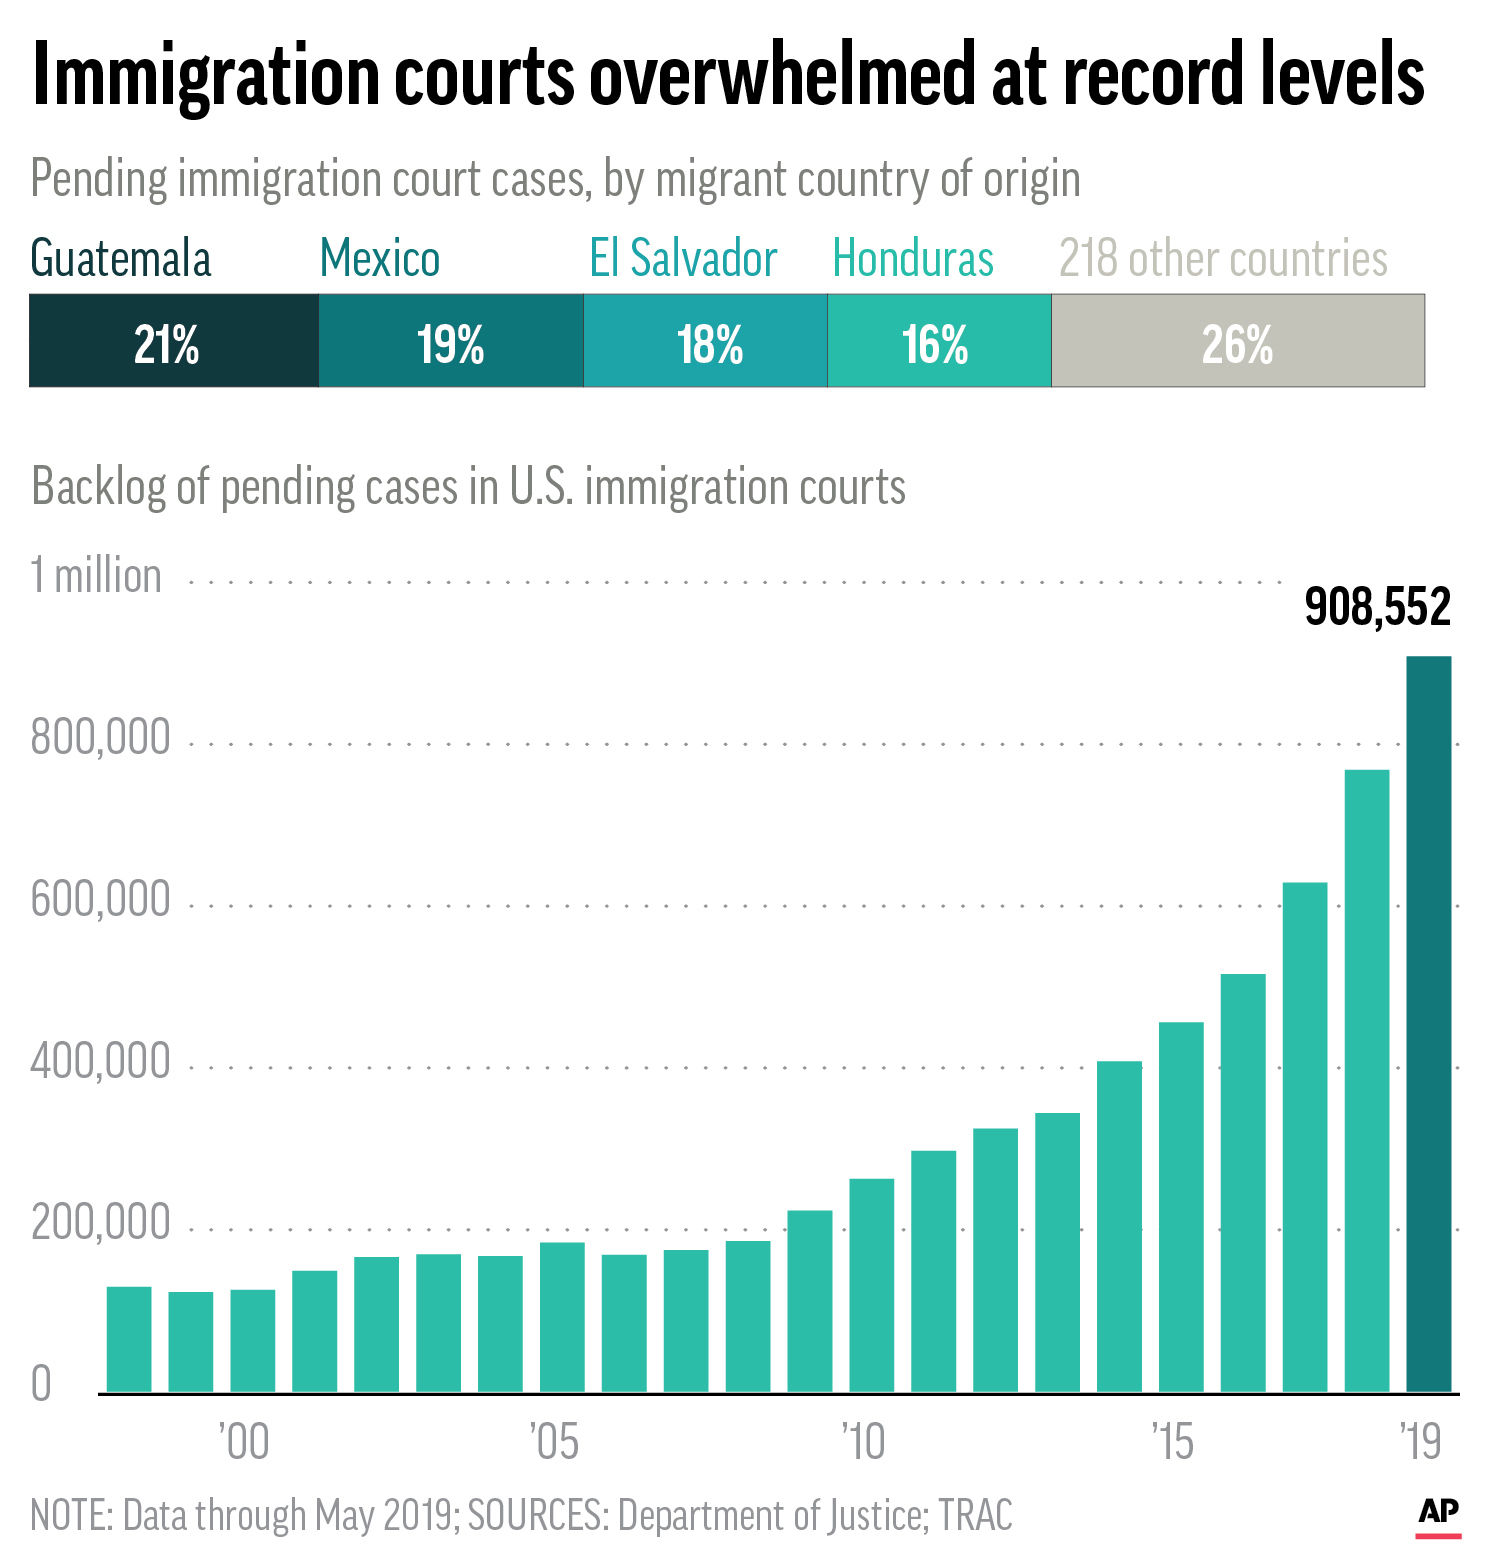 Charts show the number of immigration cases by country of origin and overall number of pending cases since 1998;